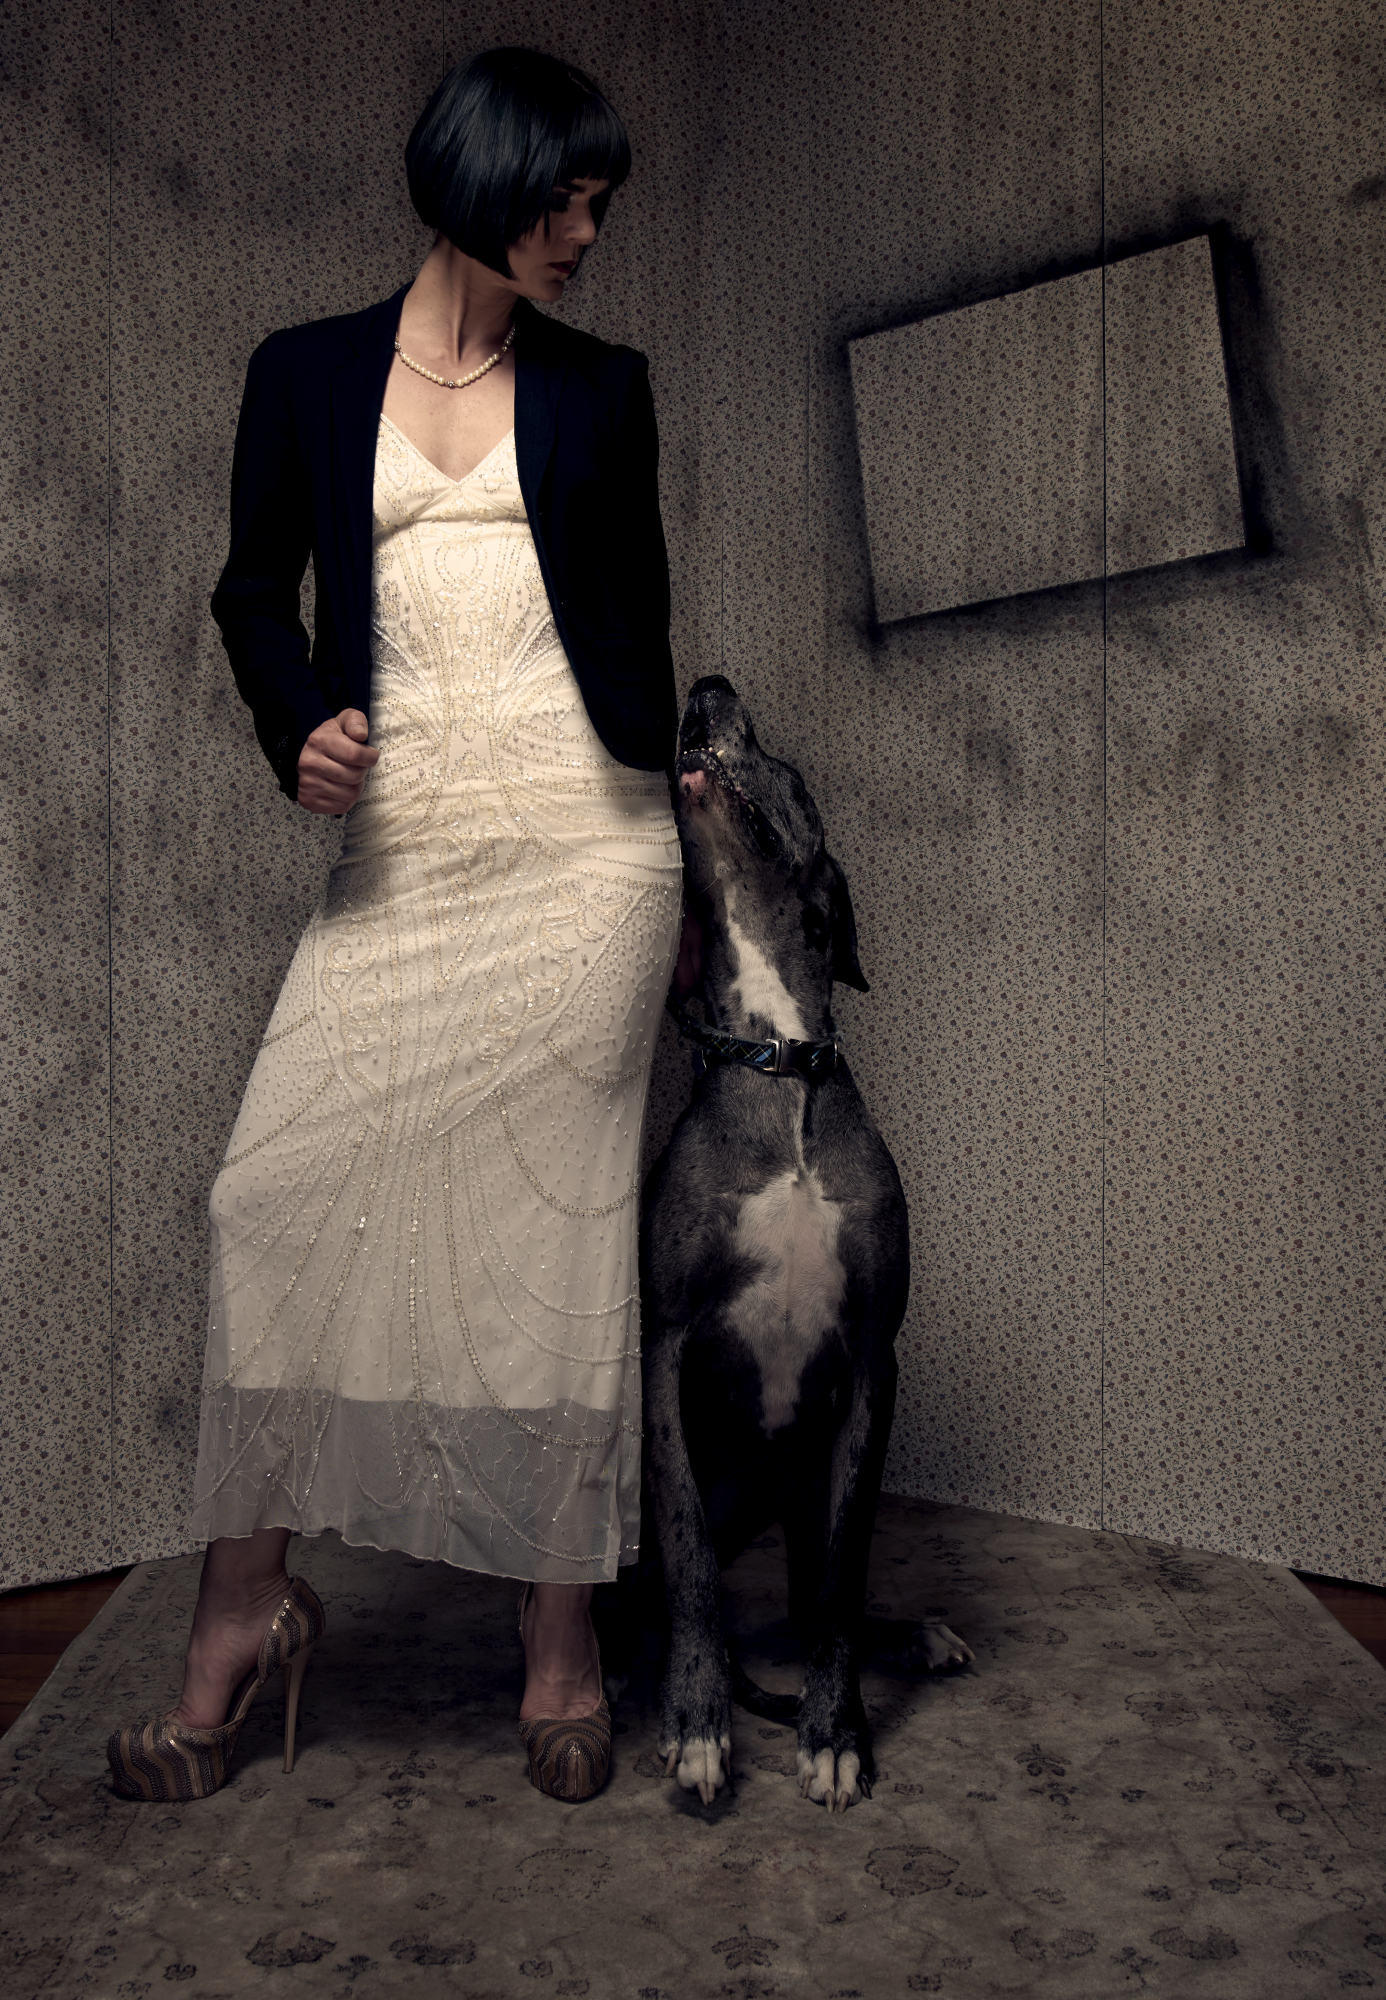 Fashion Photography - Vintage Dress with Great Dane - Grungy Editorial Portraits